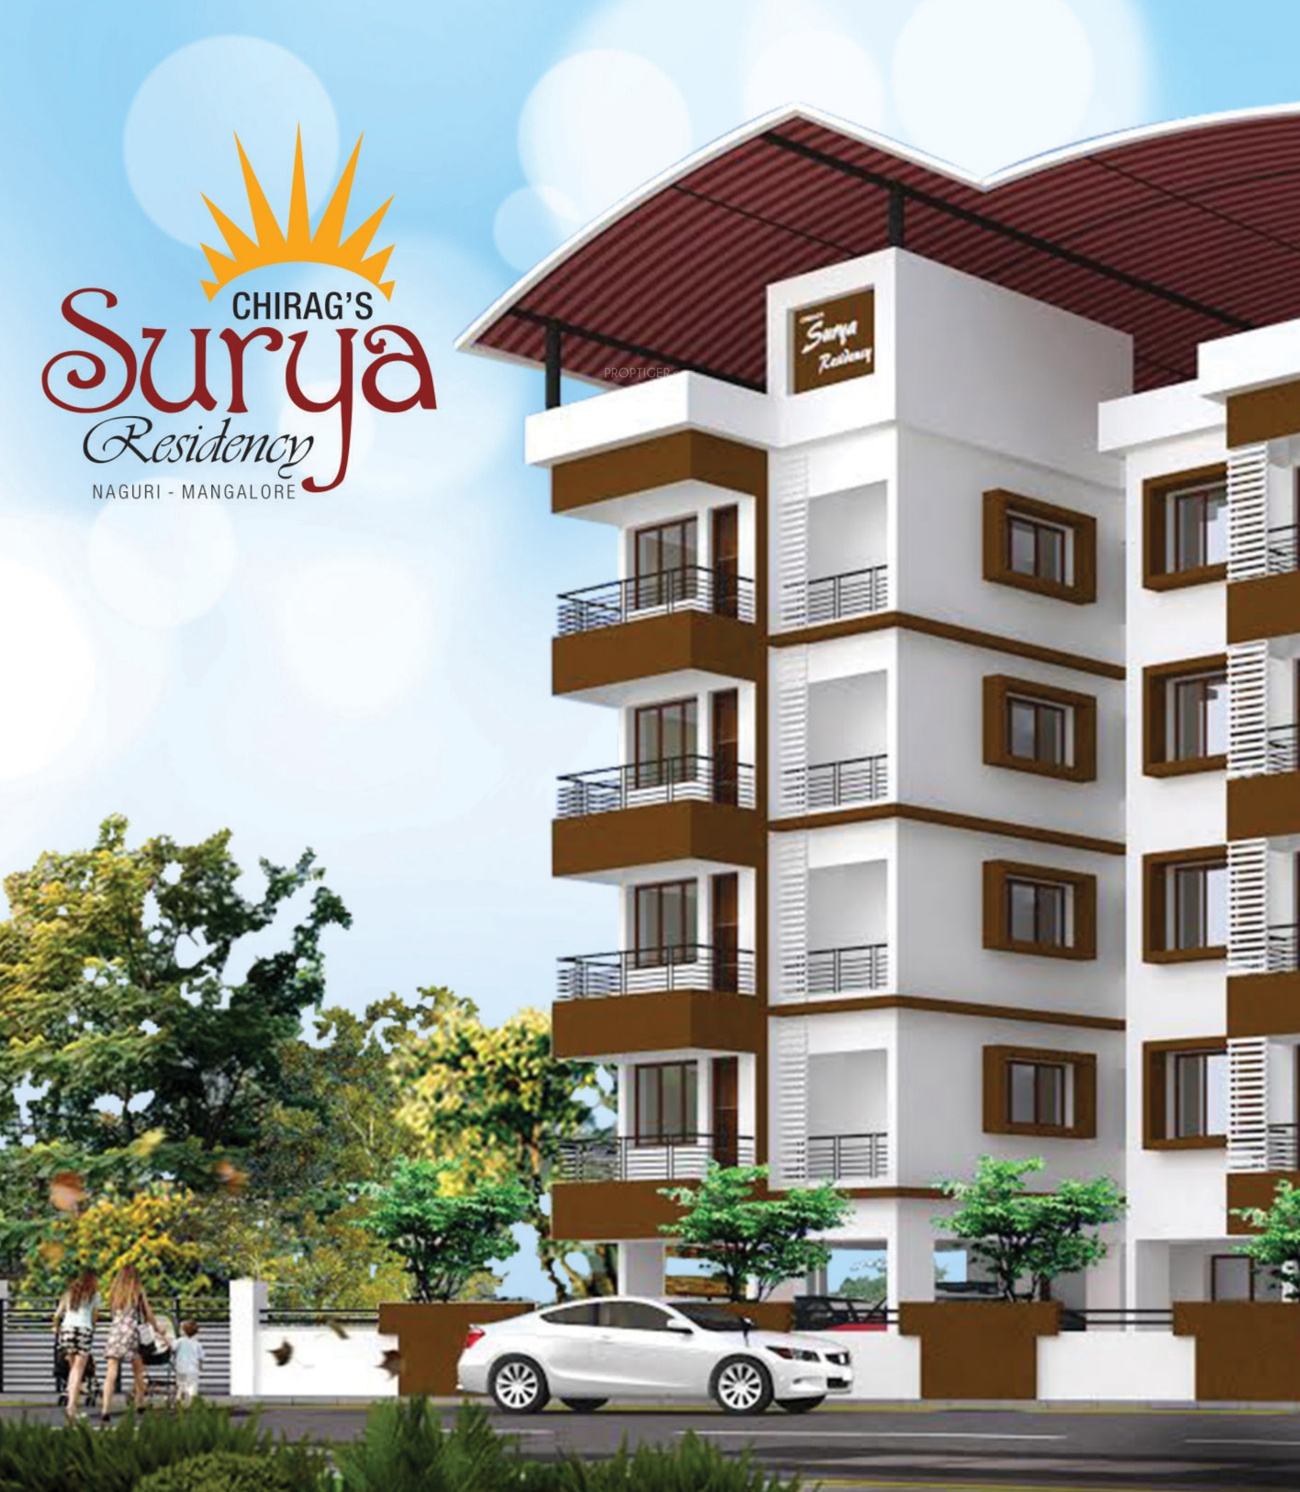 Surya Carpet Pvt Ltd Greater Noida Surya Carpet Pvt Ltd